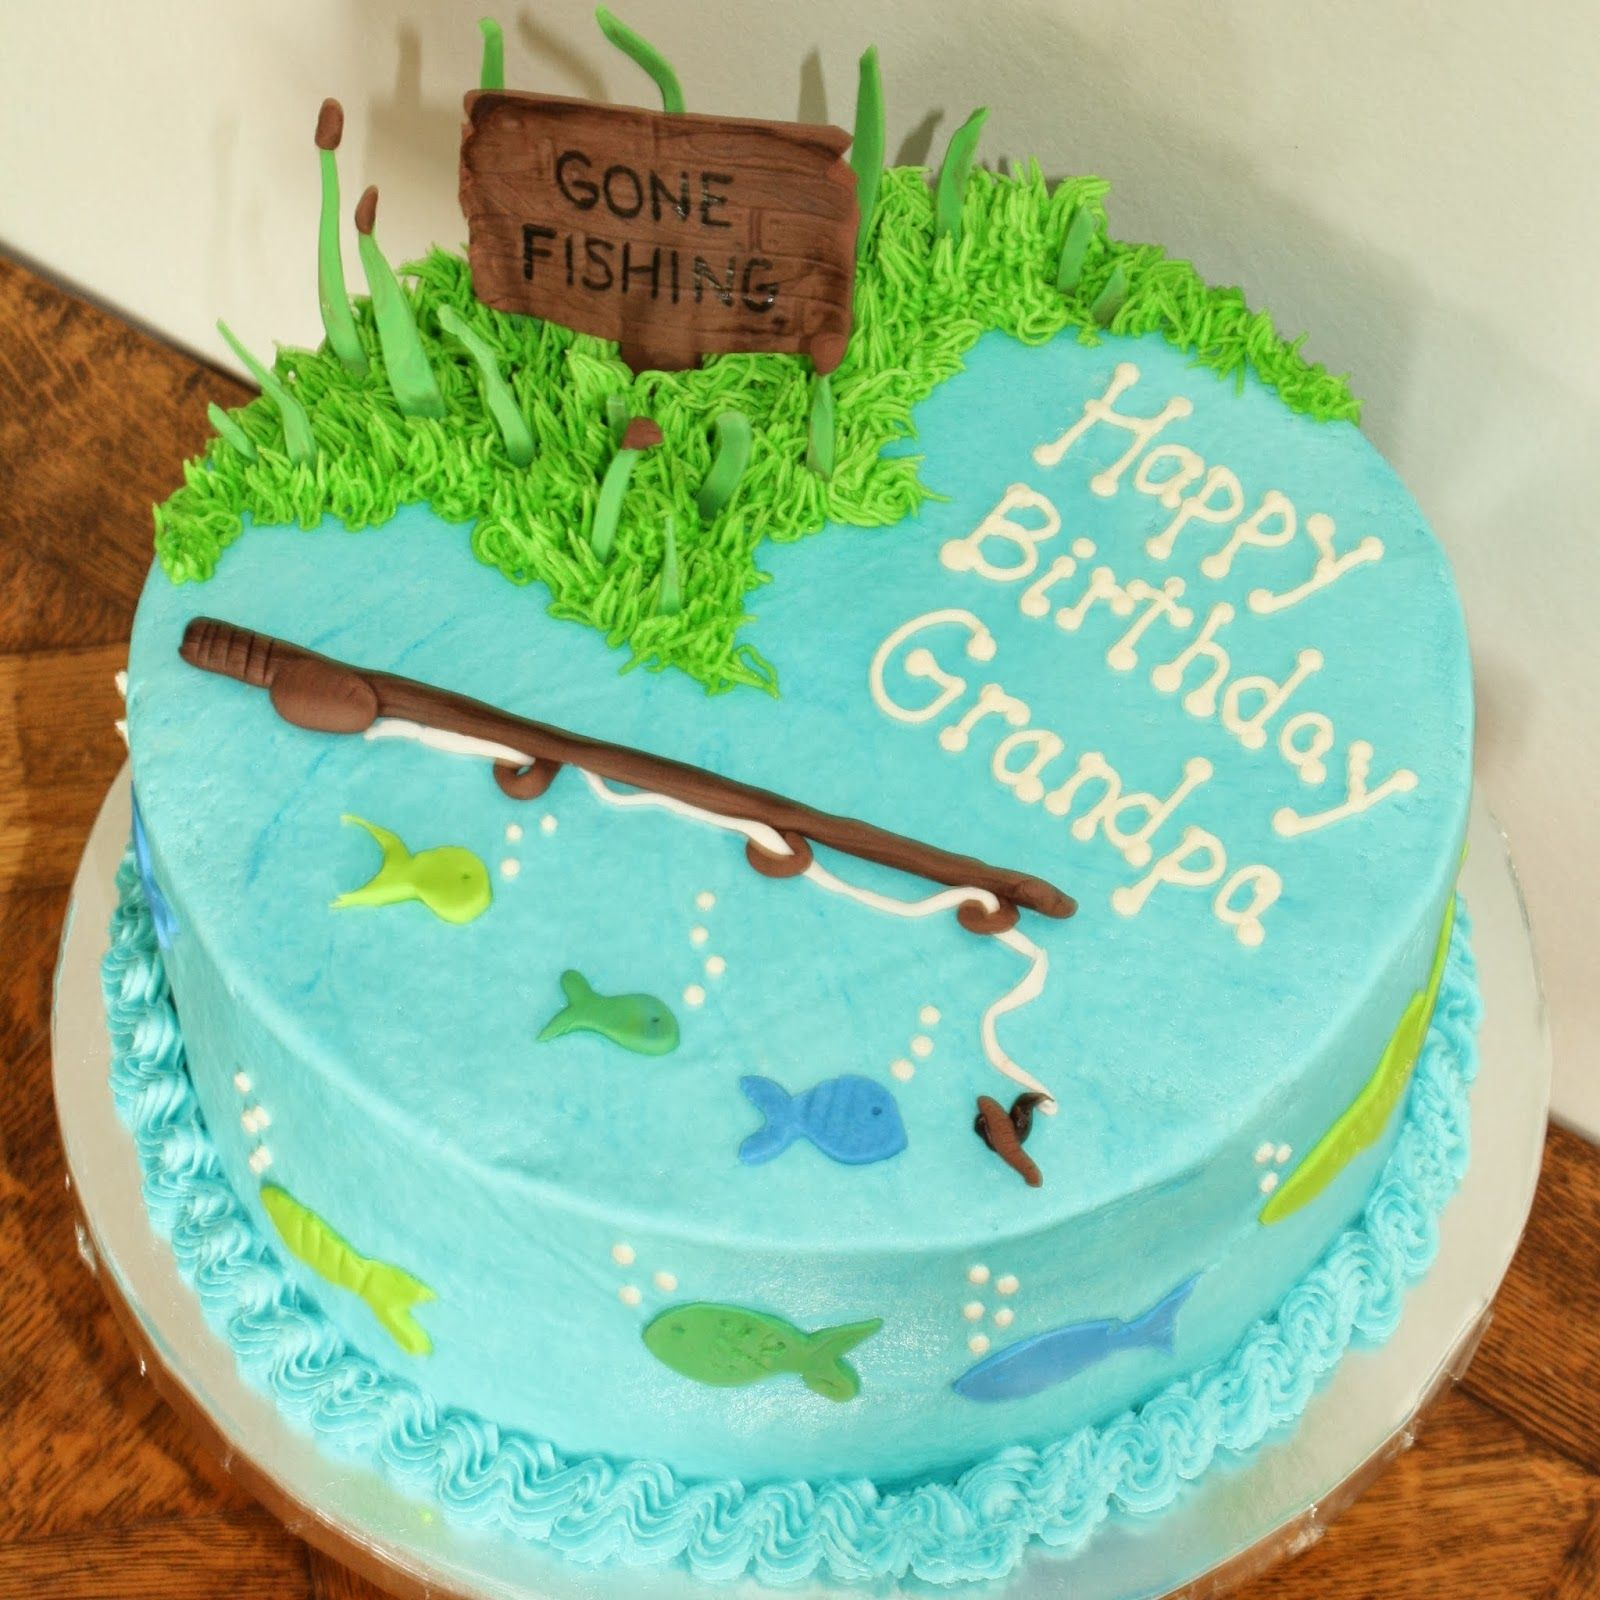 Gone Fishing Cake 30th Bday Pinterest Fishing Cakes Cake And